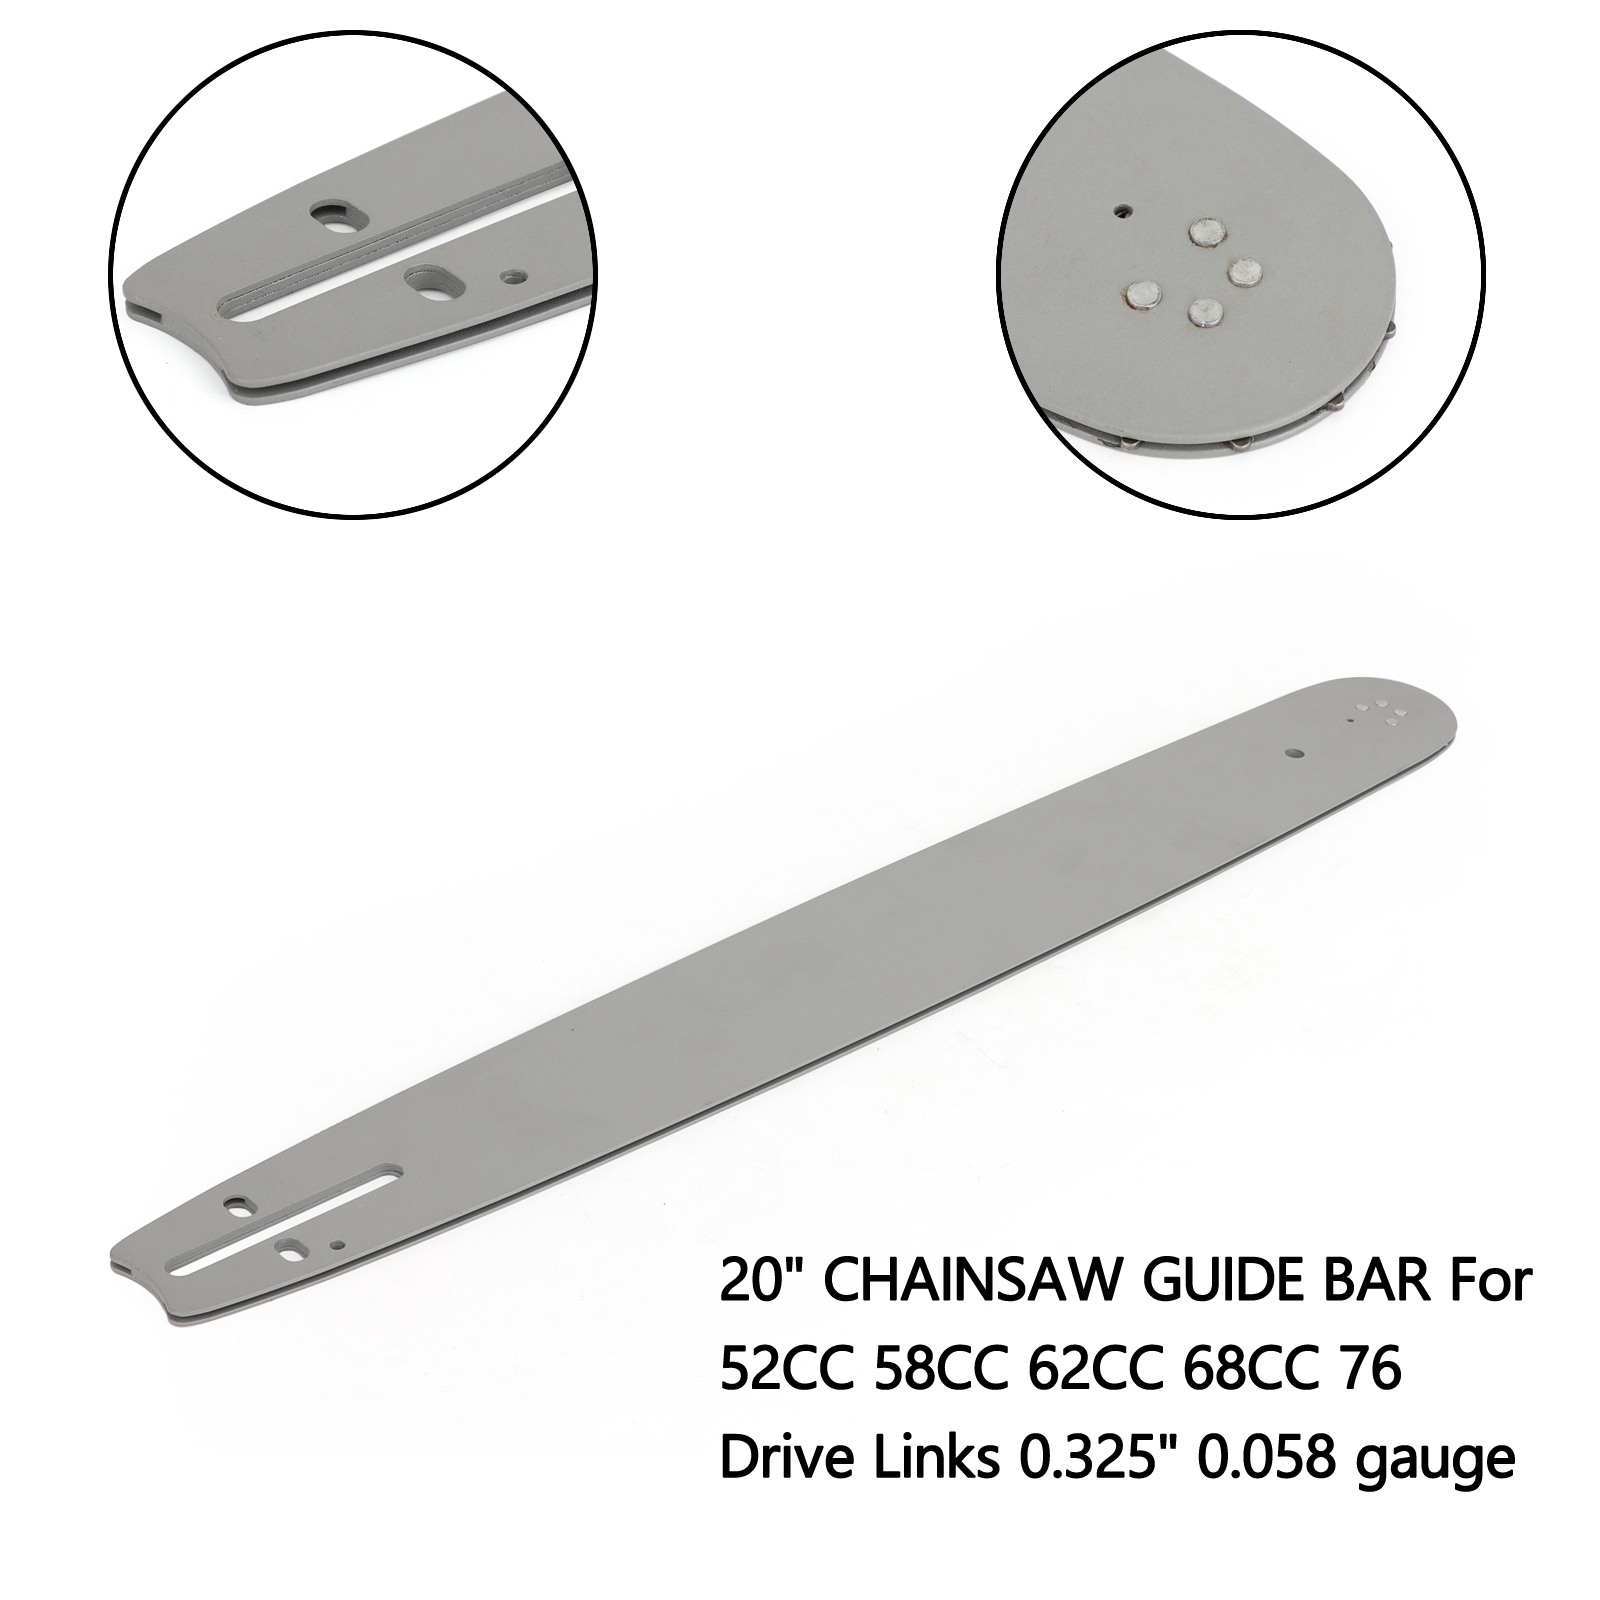 Areyourshop 20 Inch CHAINSAW GUIDE BAR For 52CC 58CC 62CC 68CC 76 Drive Links 0.325